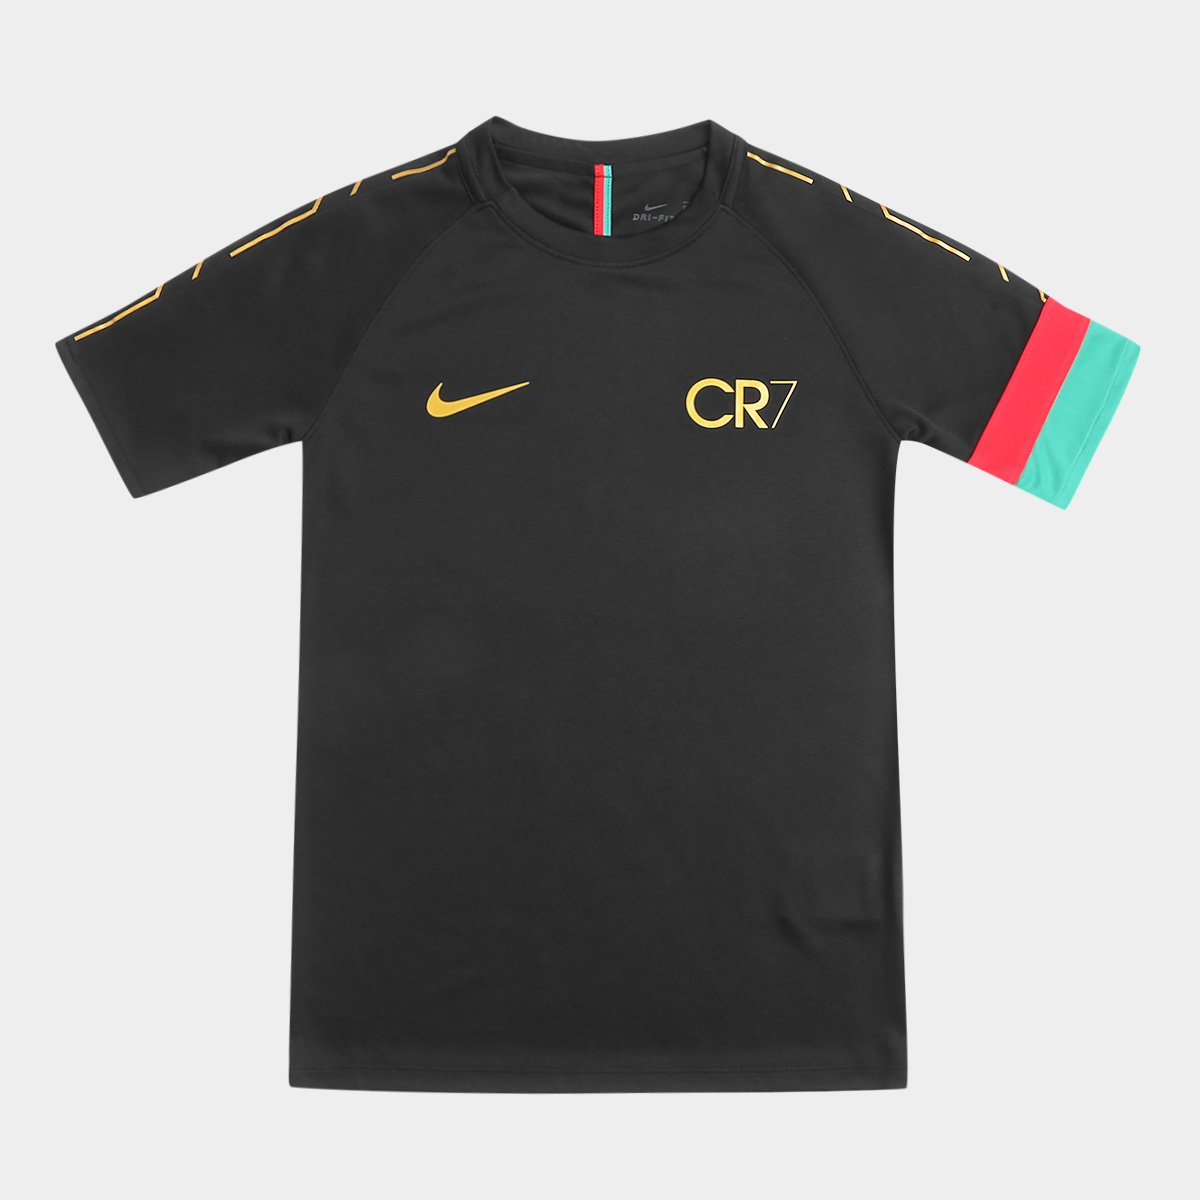 Camisa Infantil CR7 Nike Dry Academy Top SS Masculina - Compre Agora ... 609d825257c40